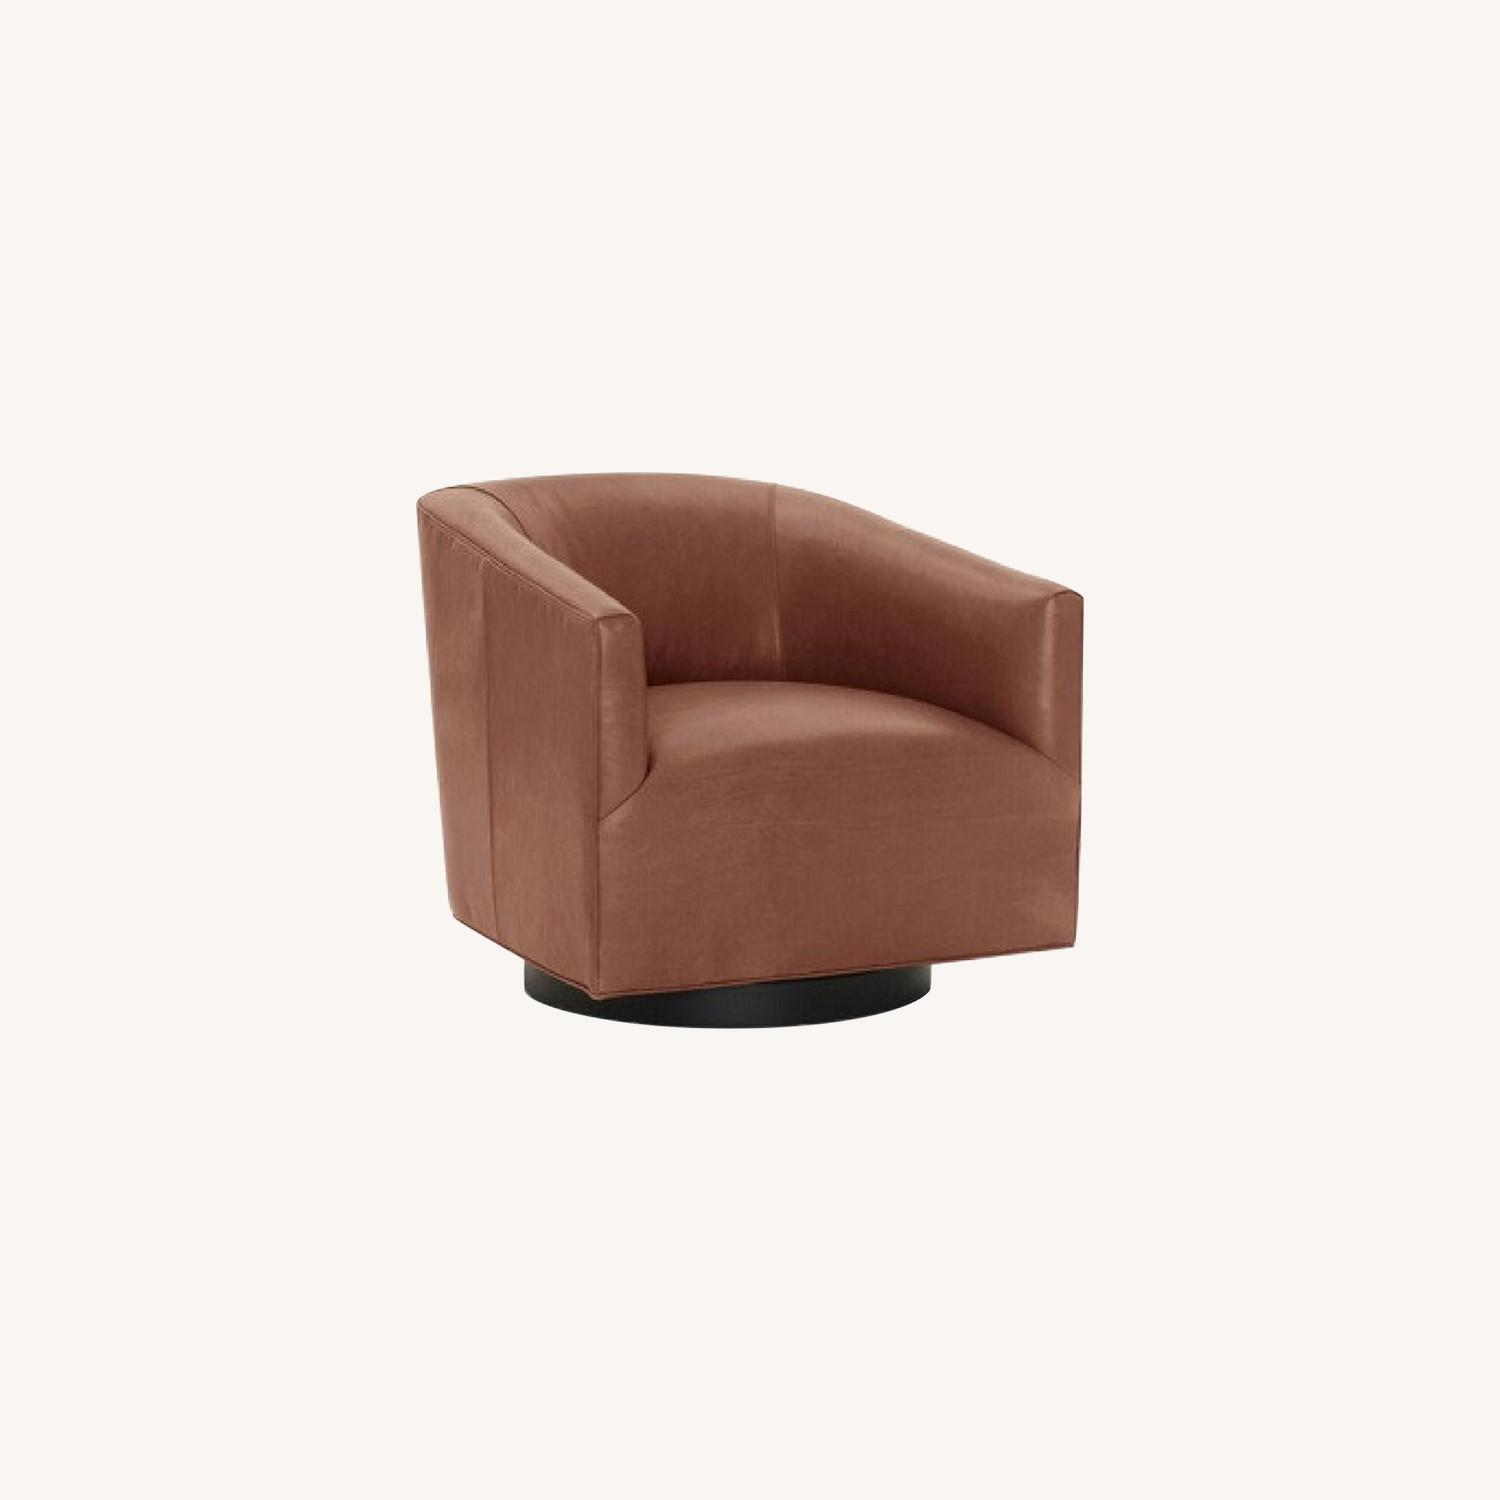 Mitchell Gold + Bob Williams Leather Swivel Chair - image-0